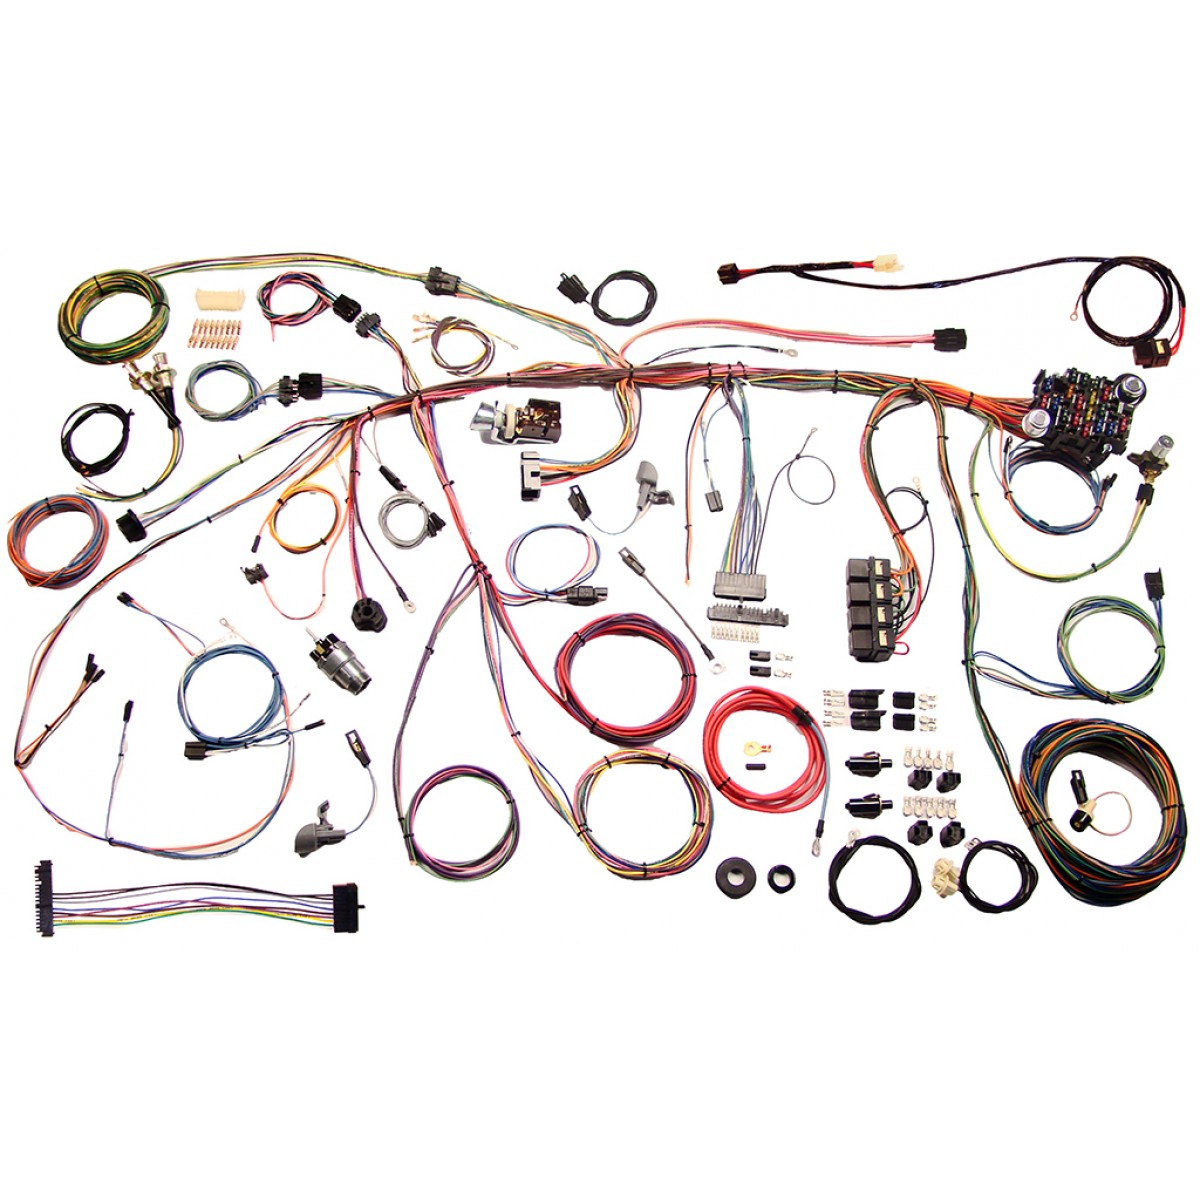 Complete Wiring Harness Kit - 1970 Ford Mustang Part# 510243